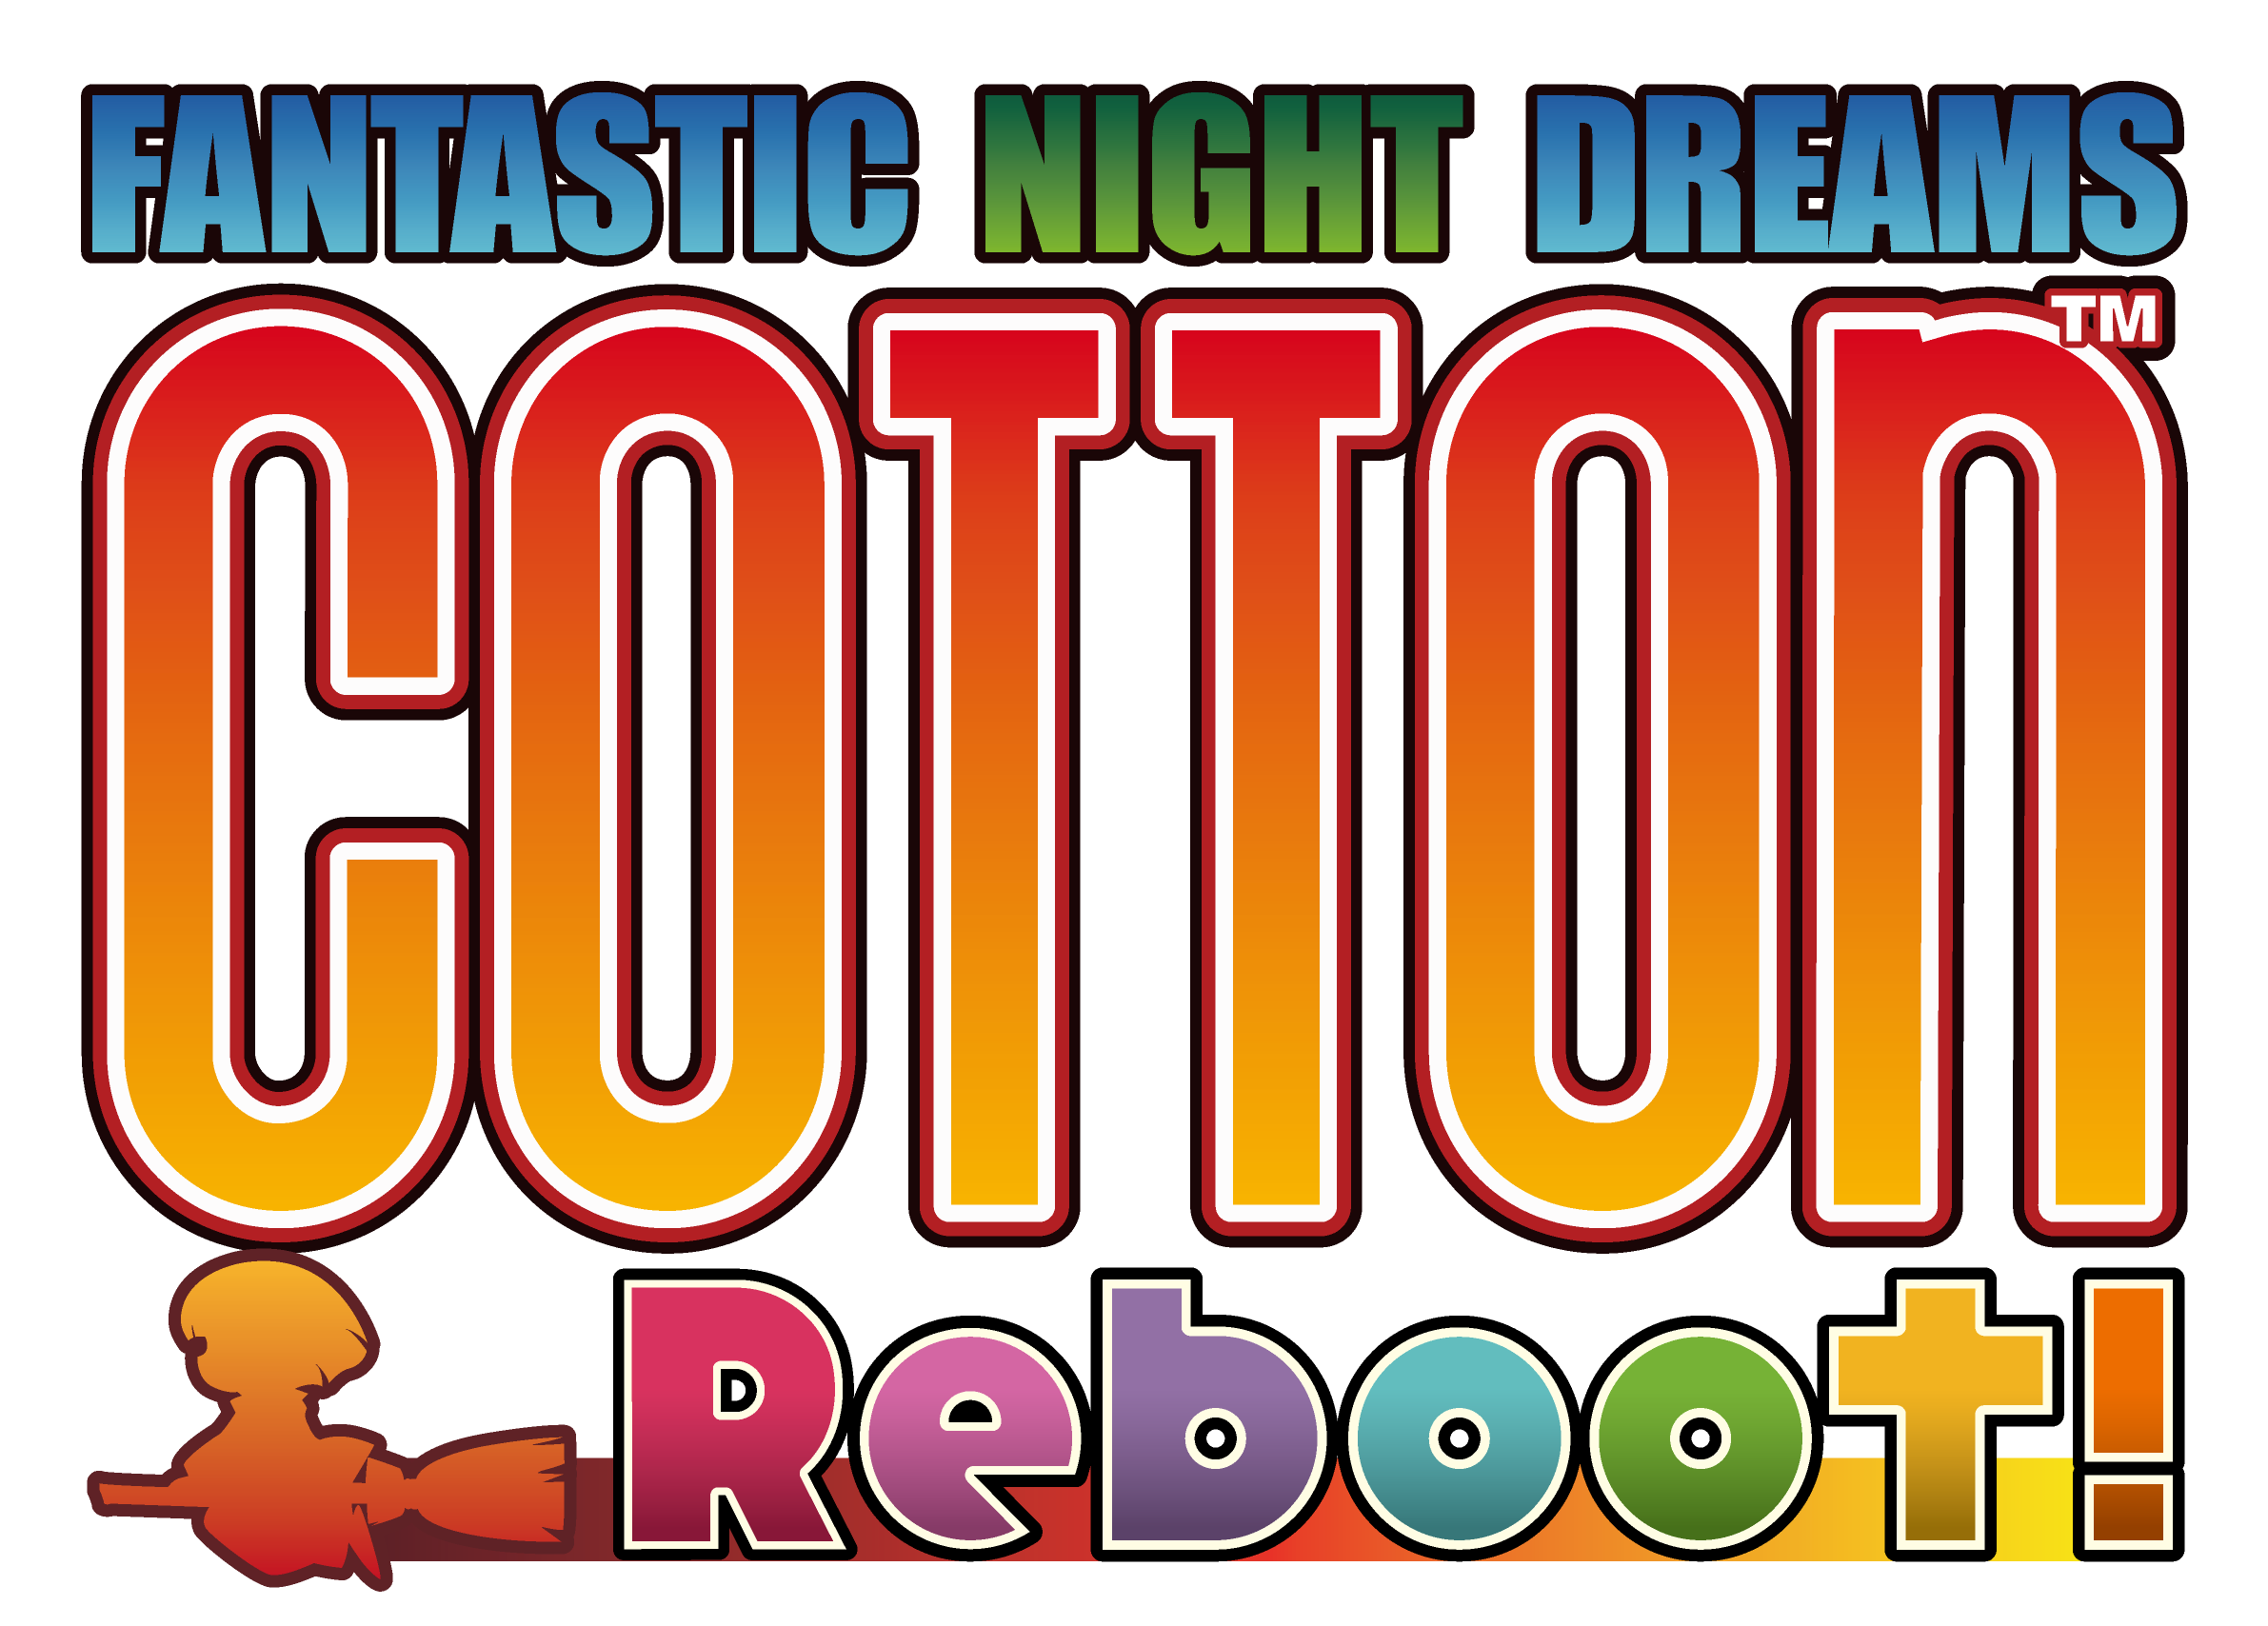 Cotton Reboot